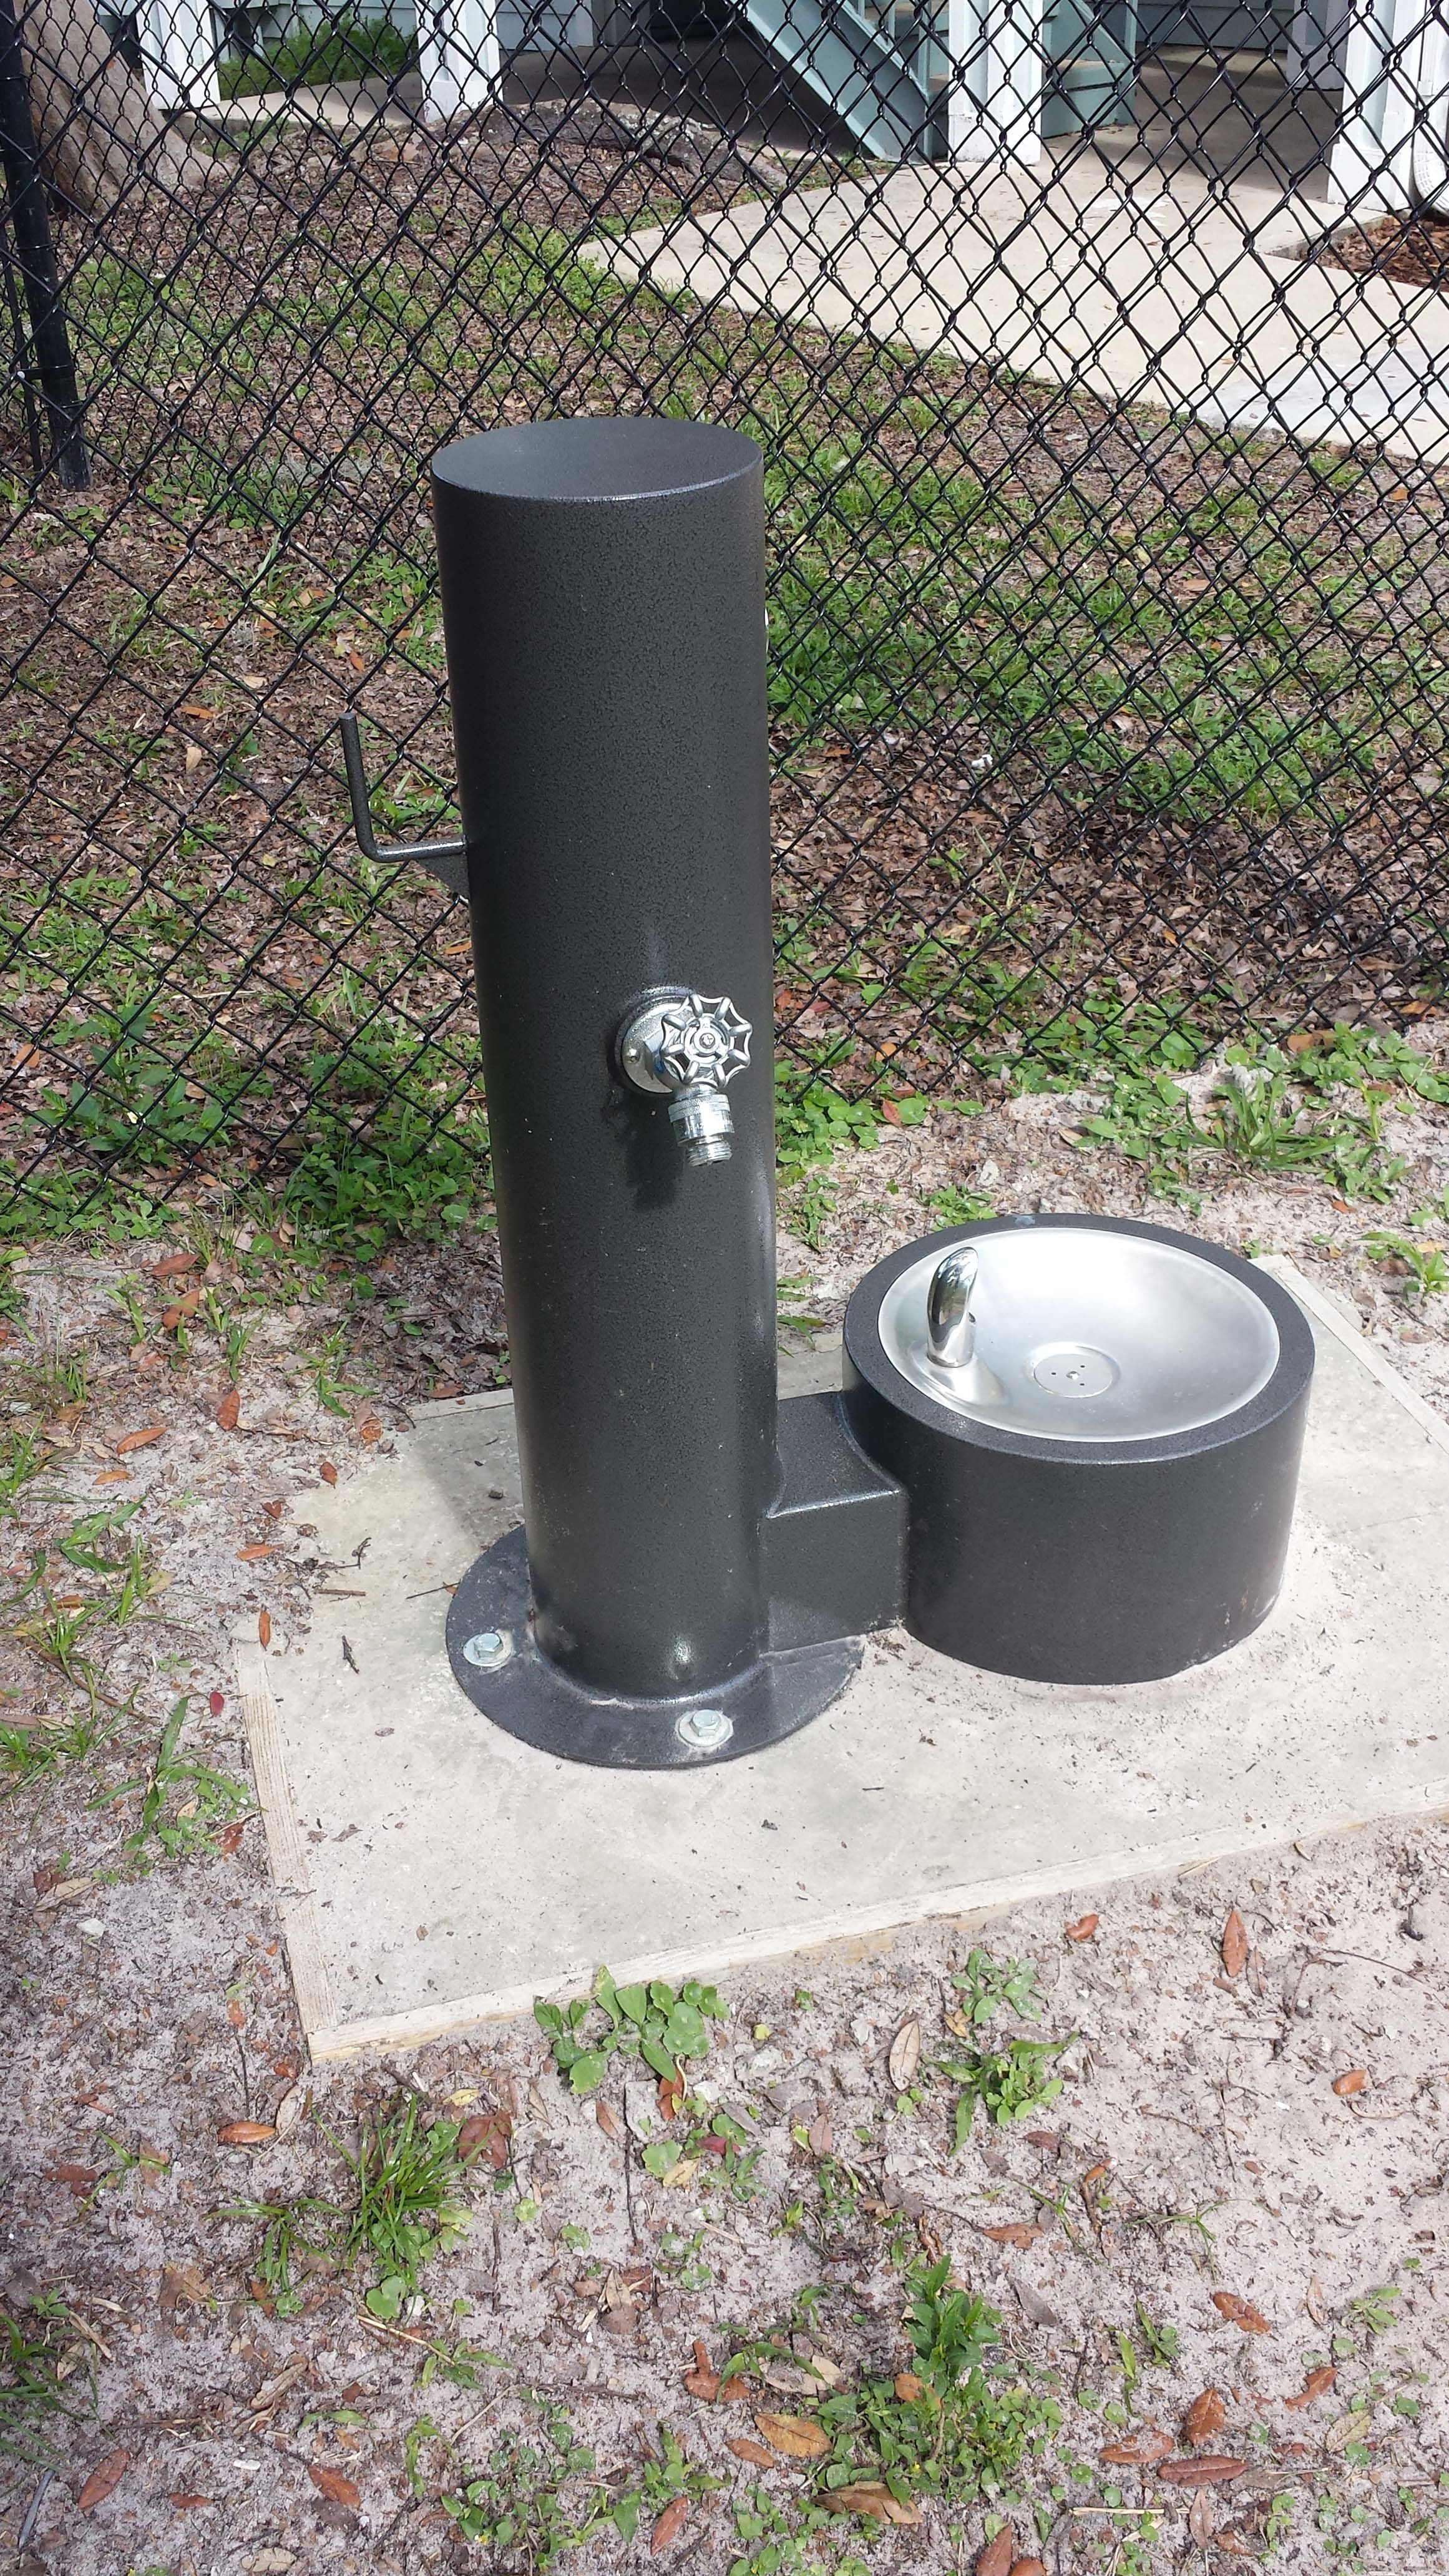 Deluxe dog watering station easy pets indoor dog park